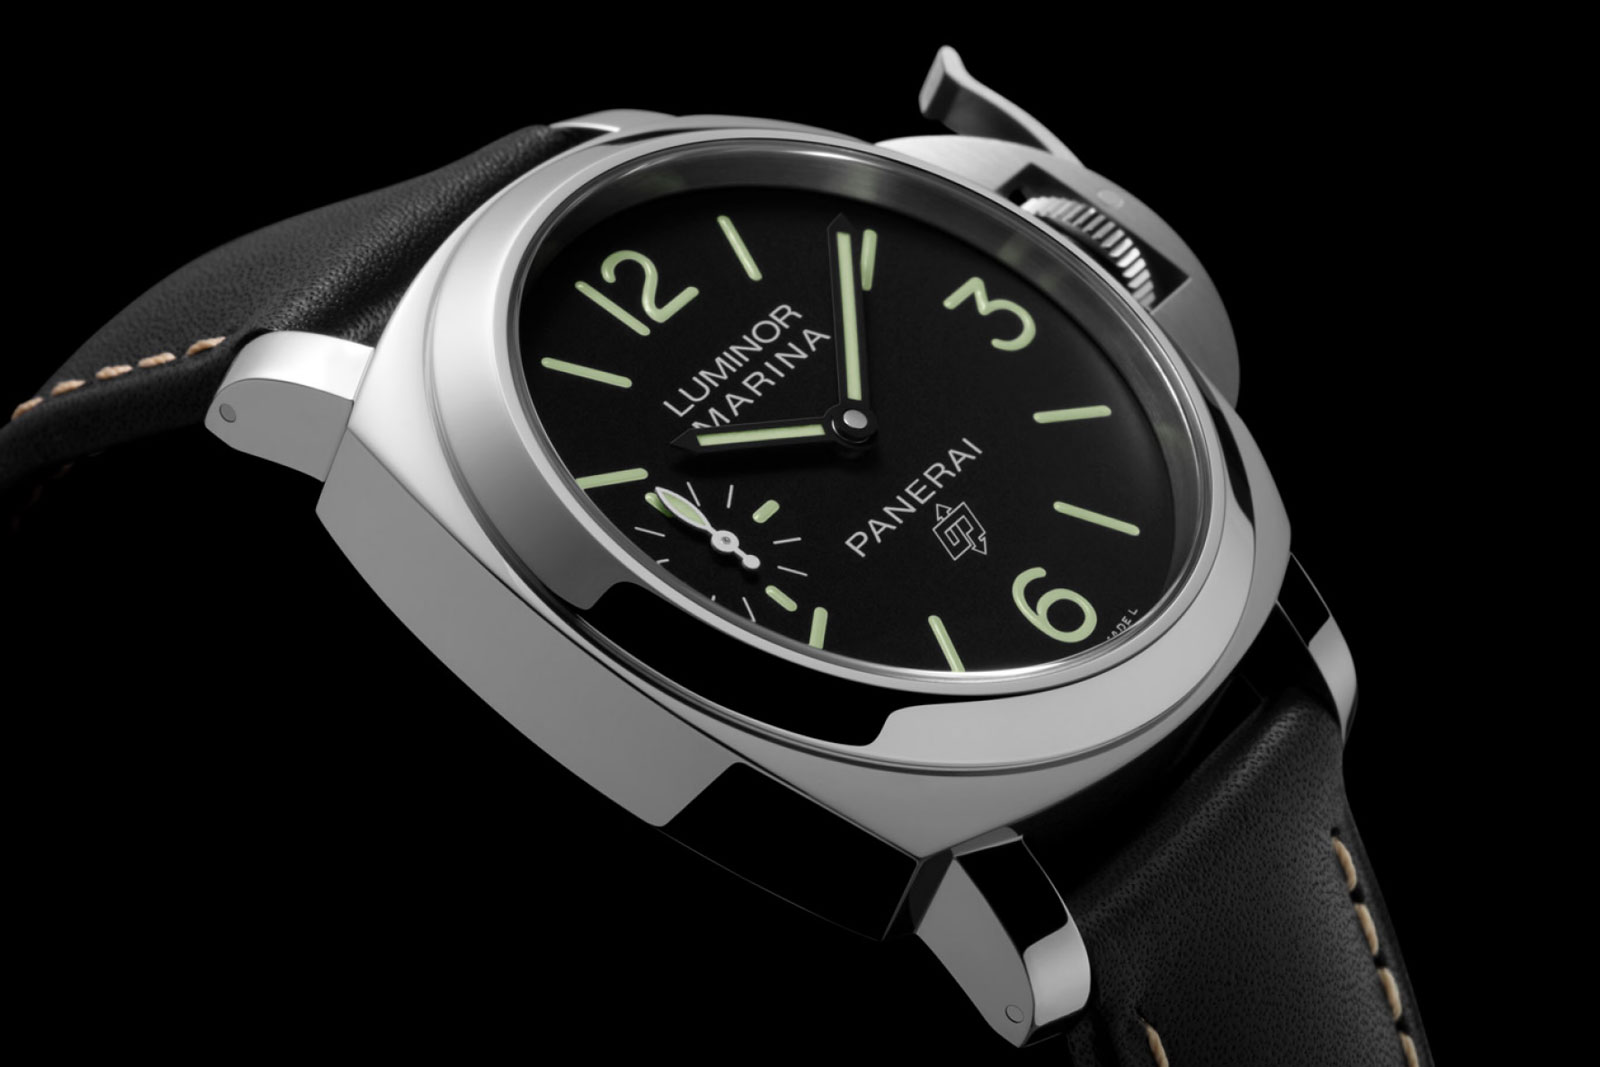 LUMINOR BASE LOGO PAM00773 - feature